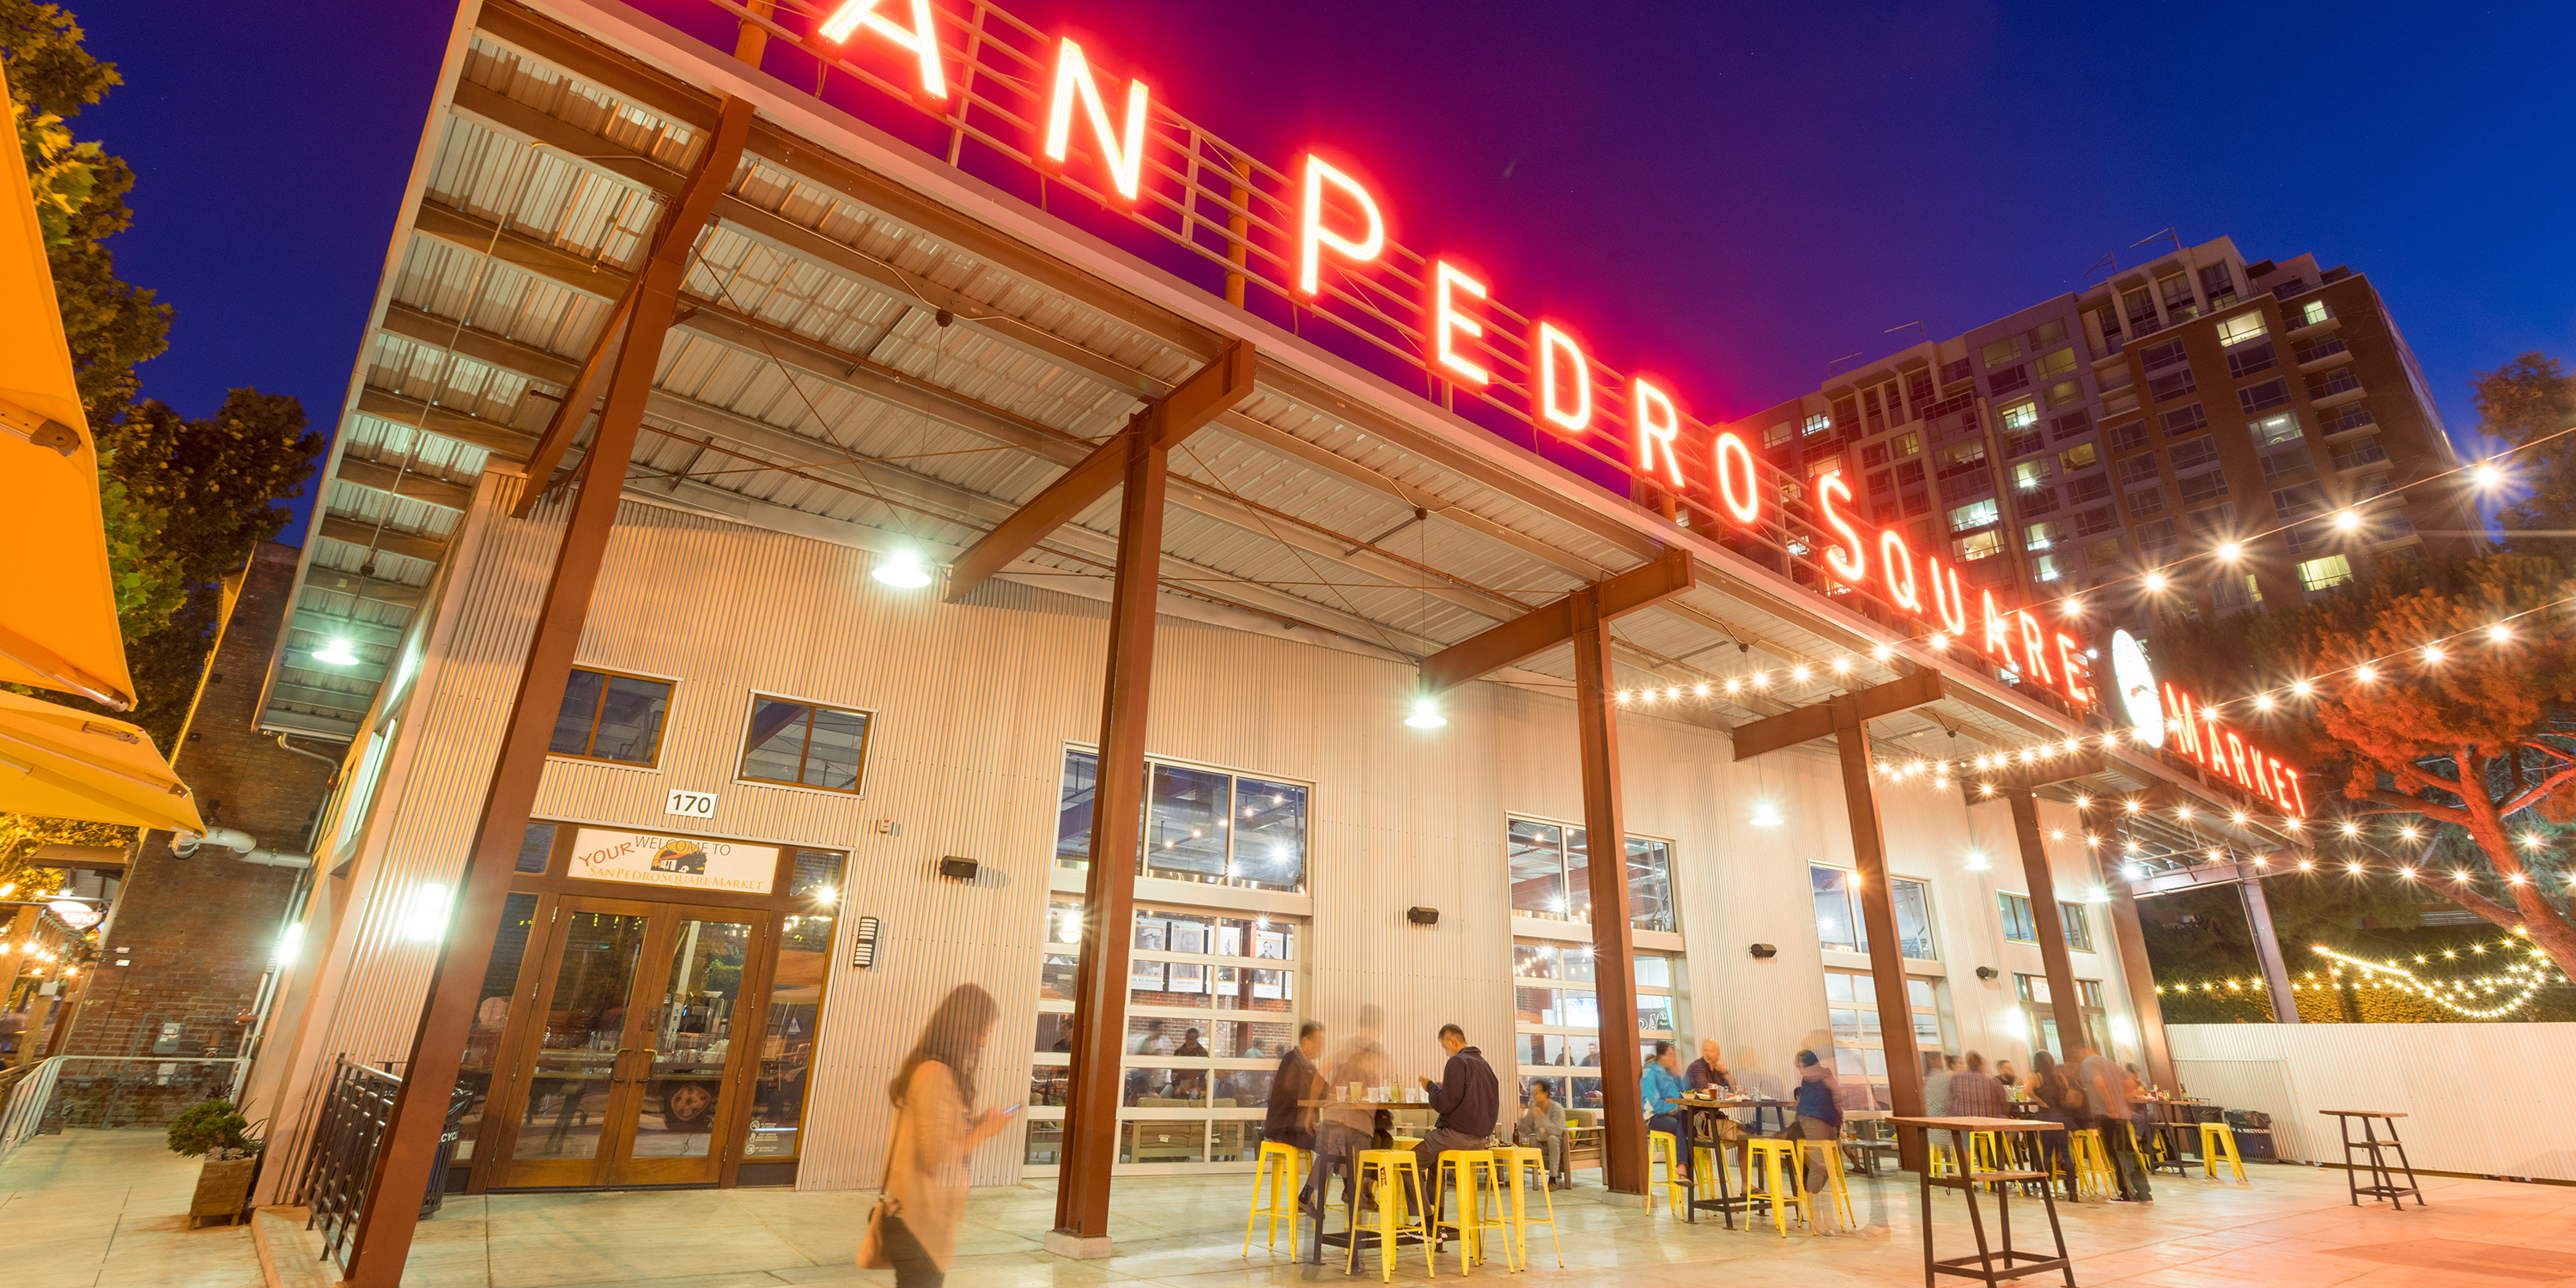 San Jose S Hottest Attractions And Restaurants Via